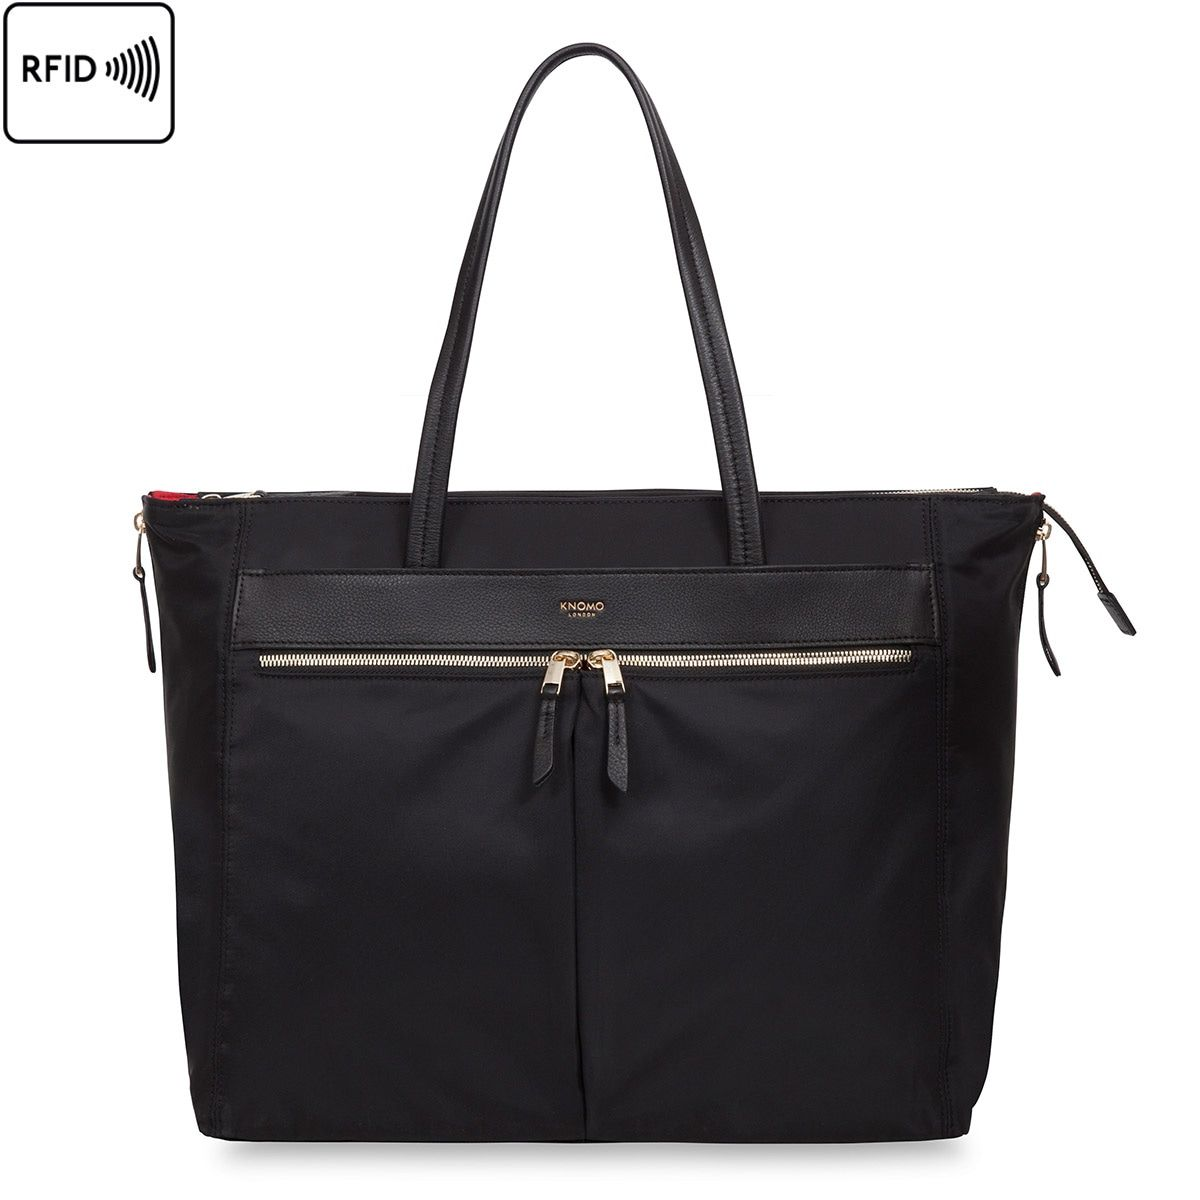 Laptoptas dames Knomo Grosvenor Place Expandable Tote Black 15 inch